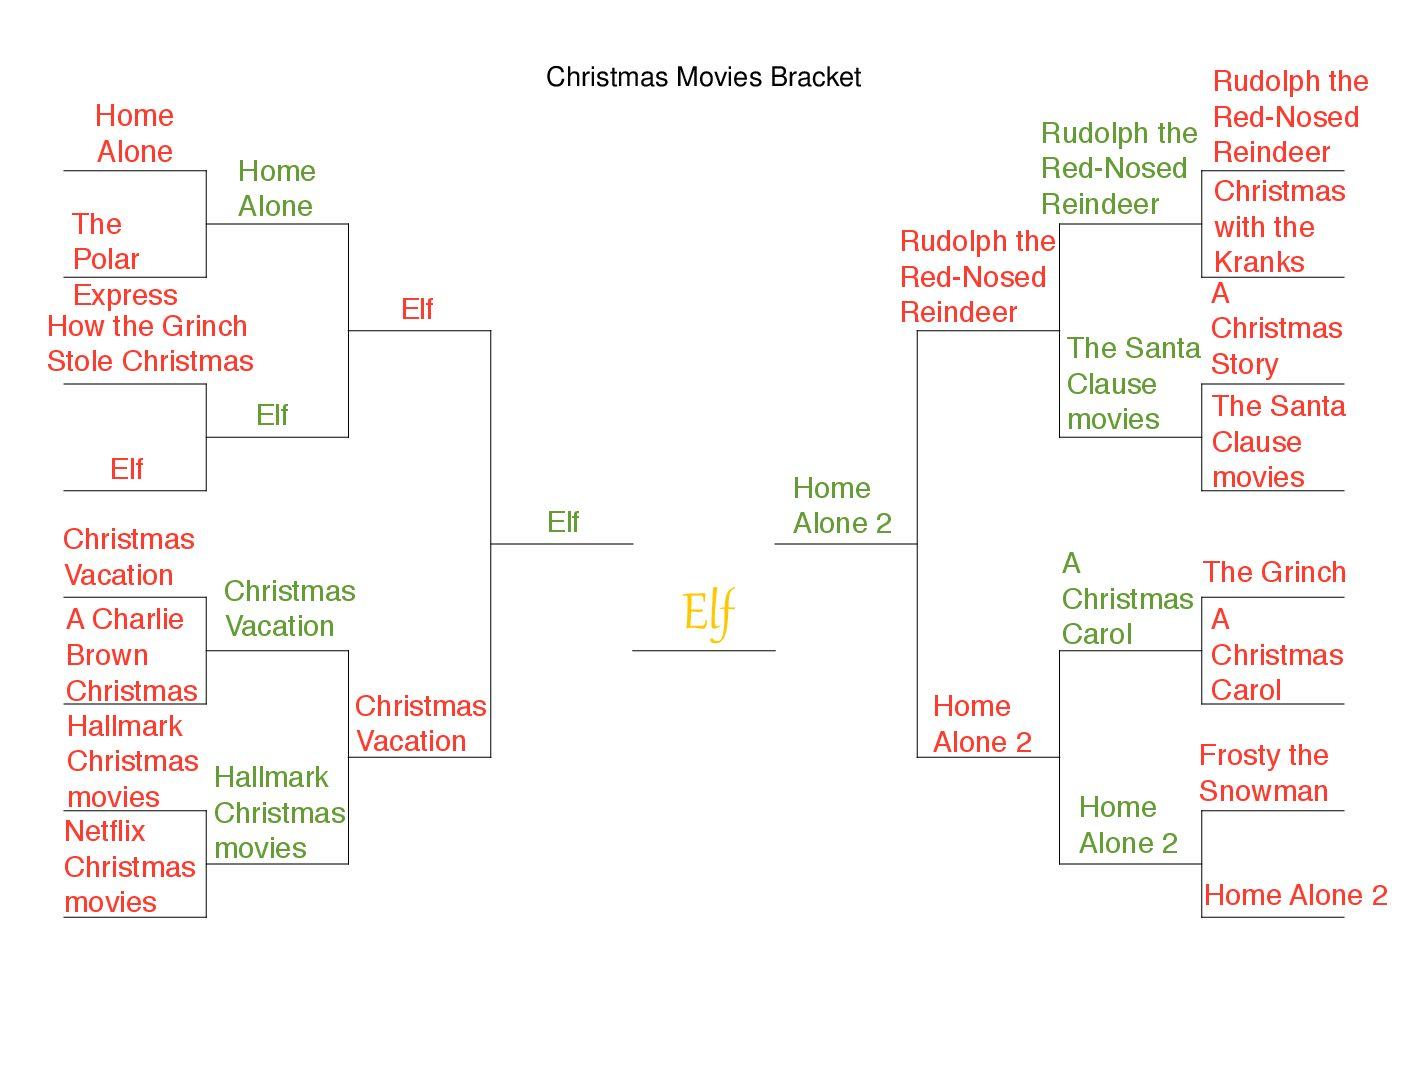 The Holiday Movie Bracket